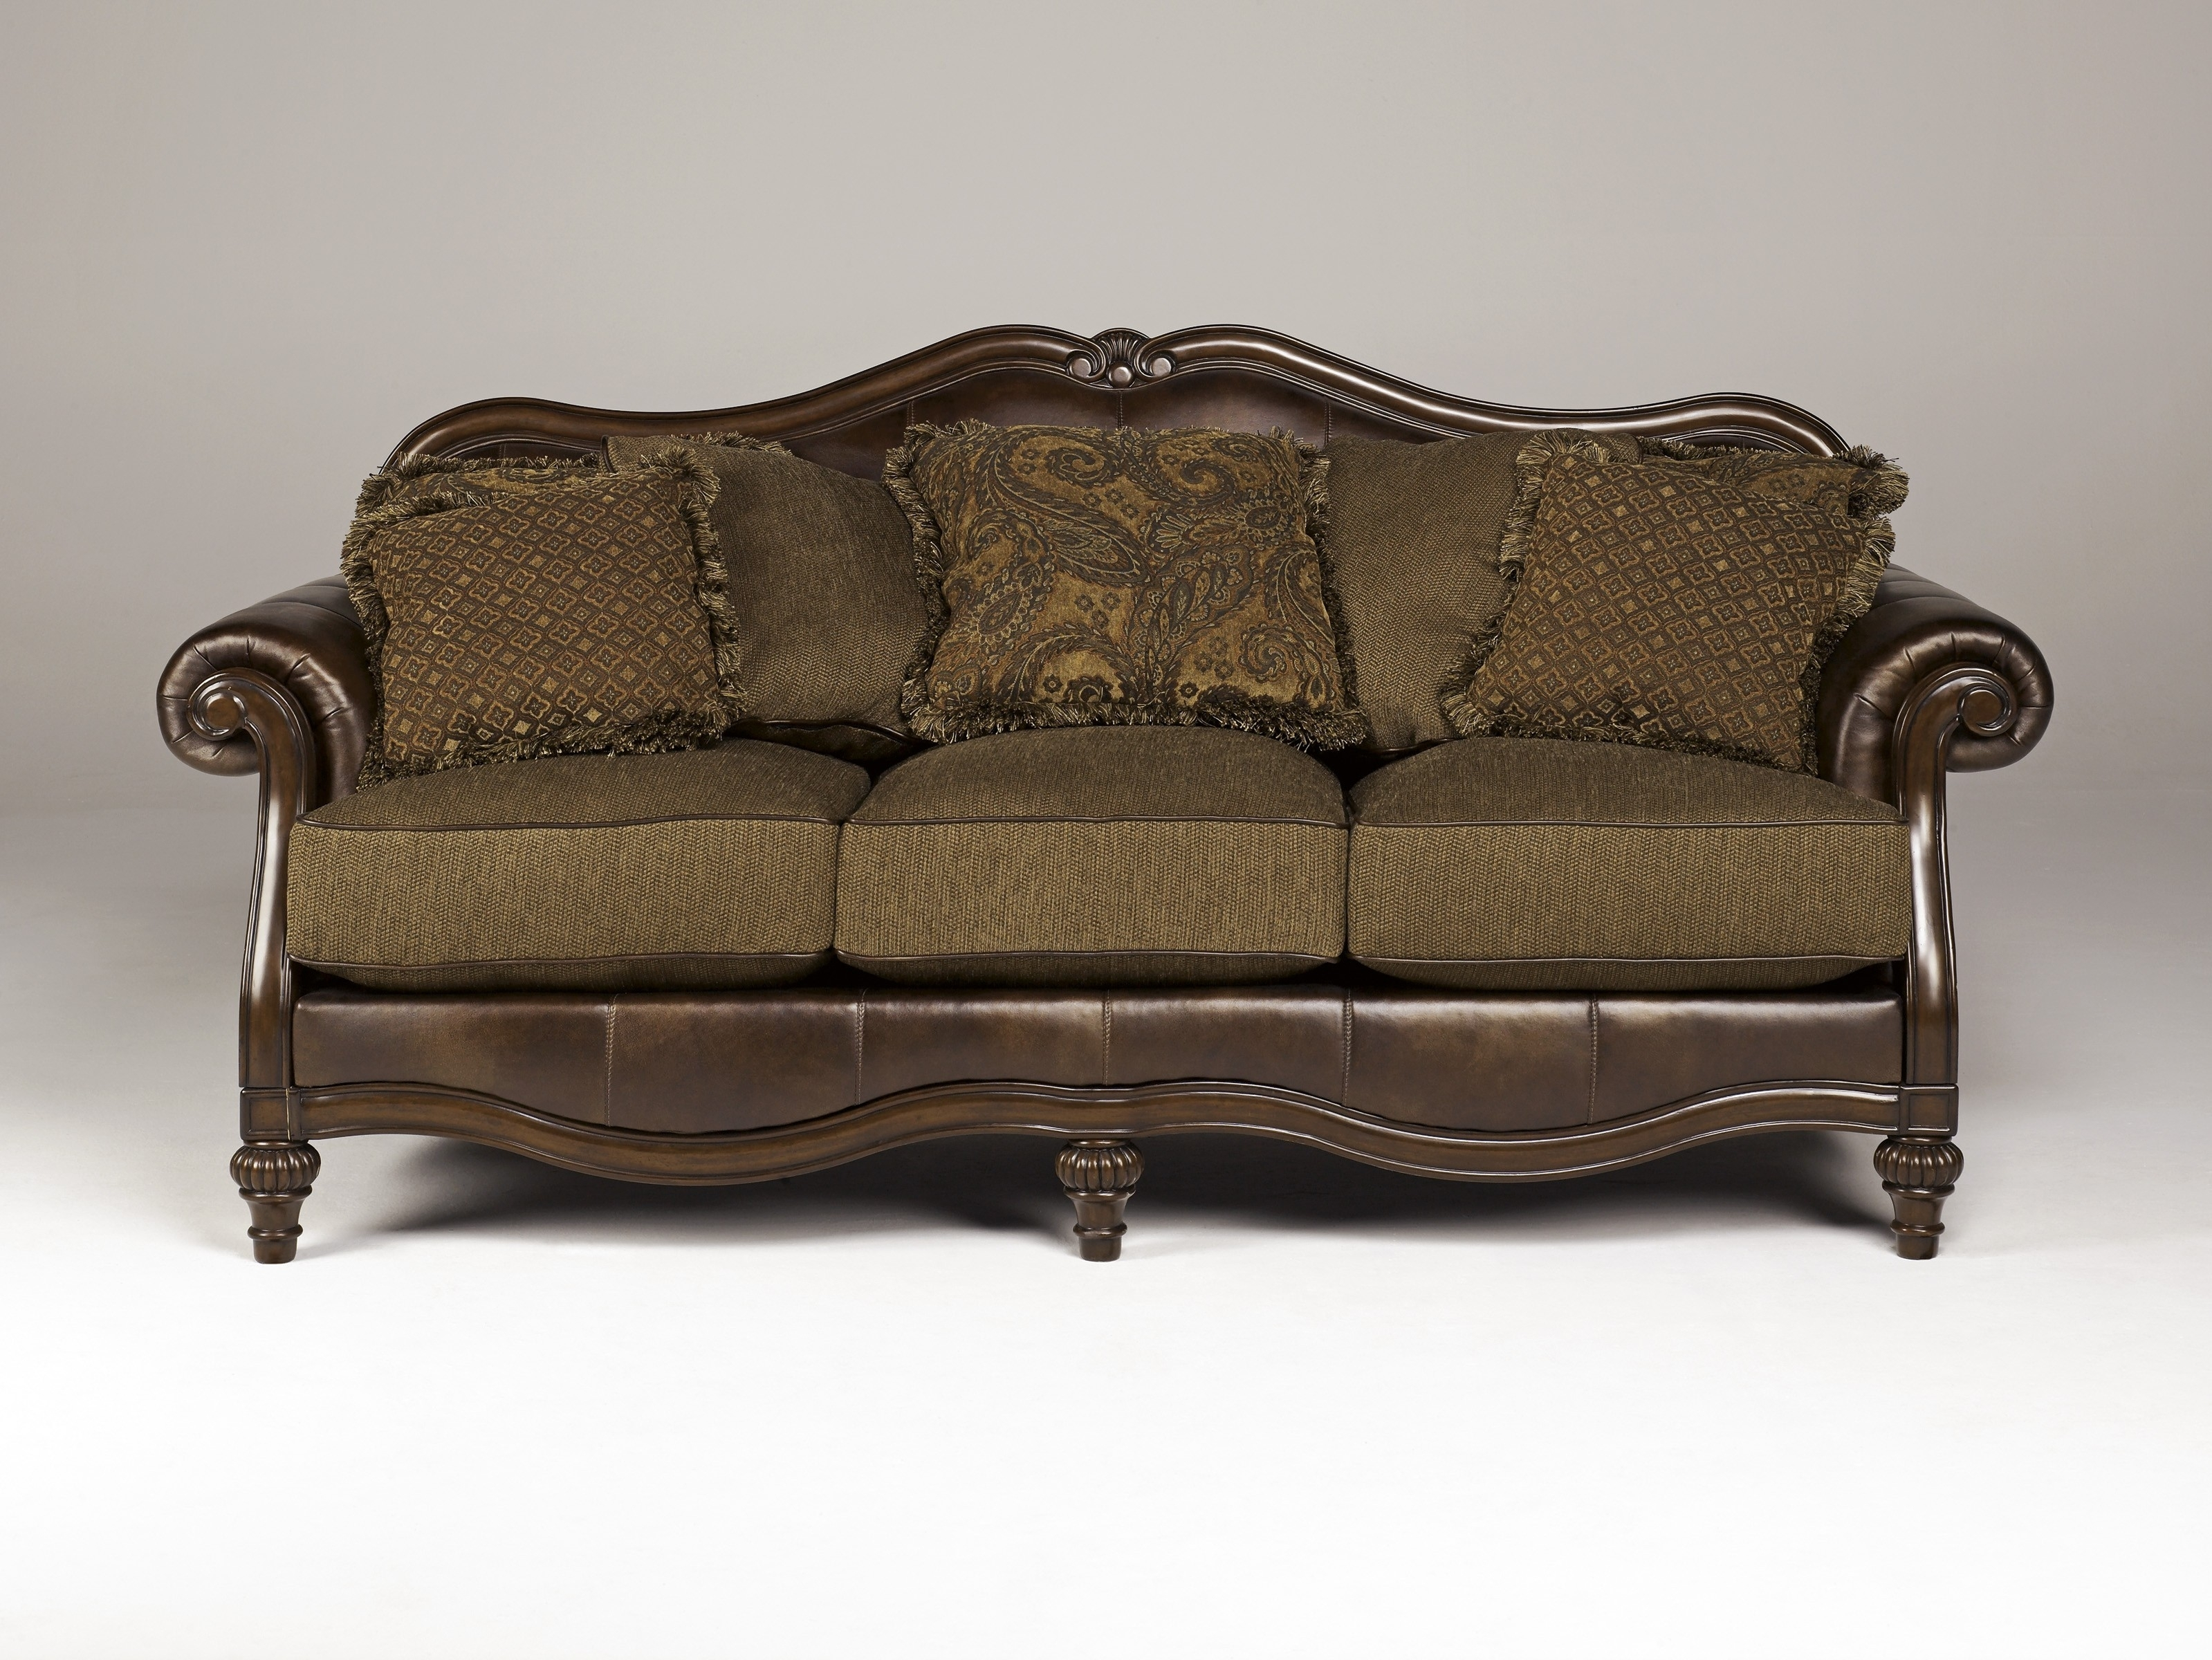 New Ideas Antique Sofas And Chairs With Furniture Living Room For Antique Sofas (View 5 of 10)